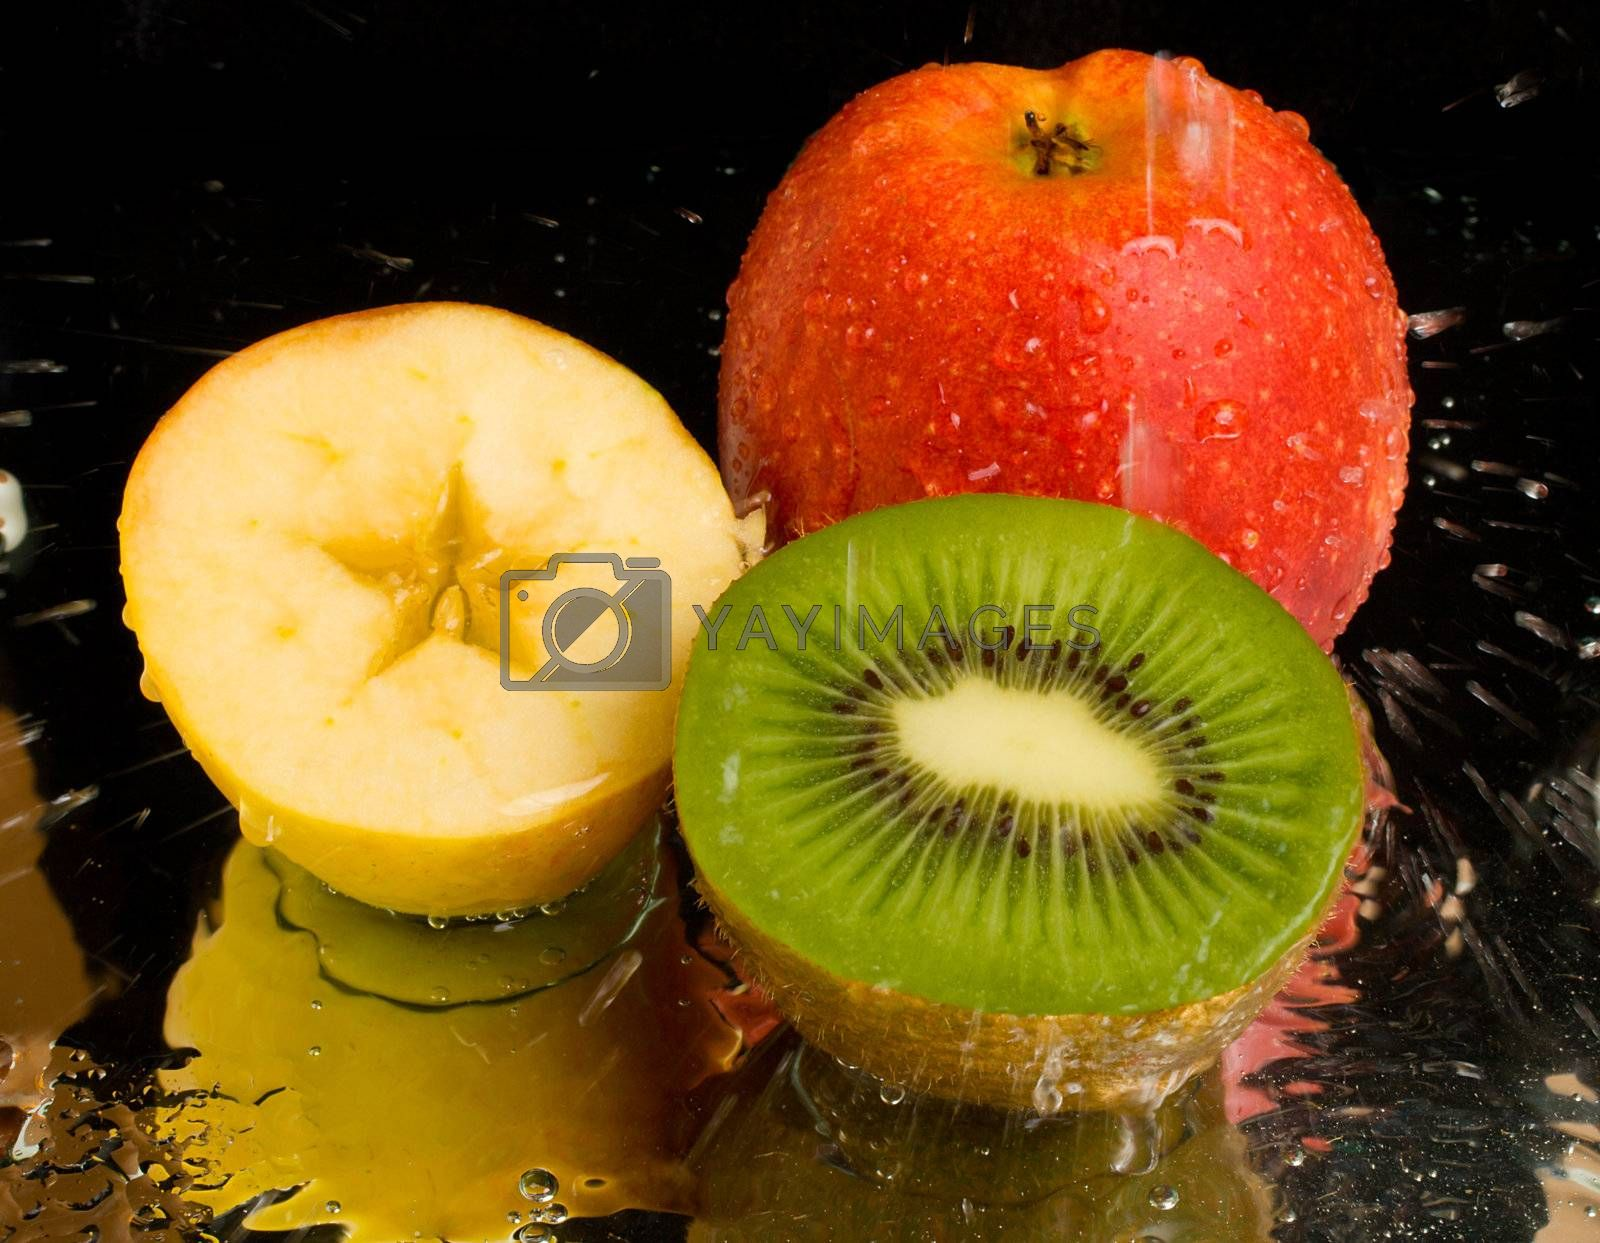 Royalty free image of water spray on kiwi and apples by Alekcey